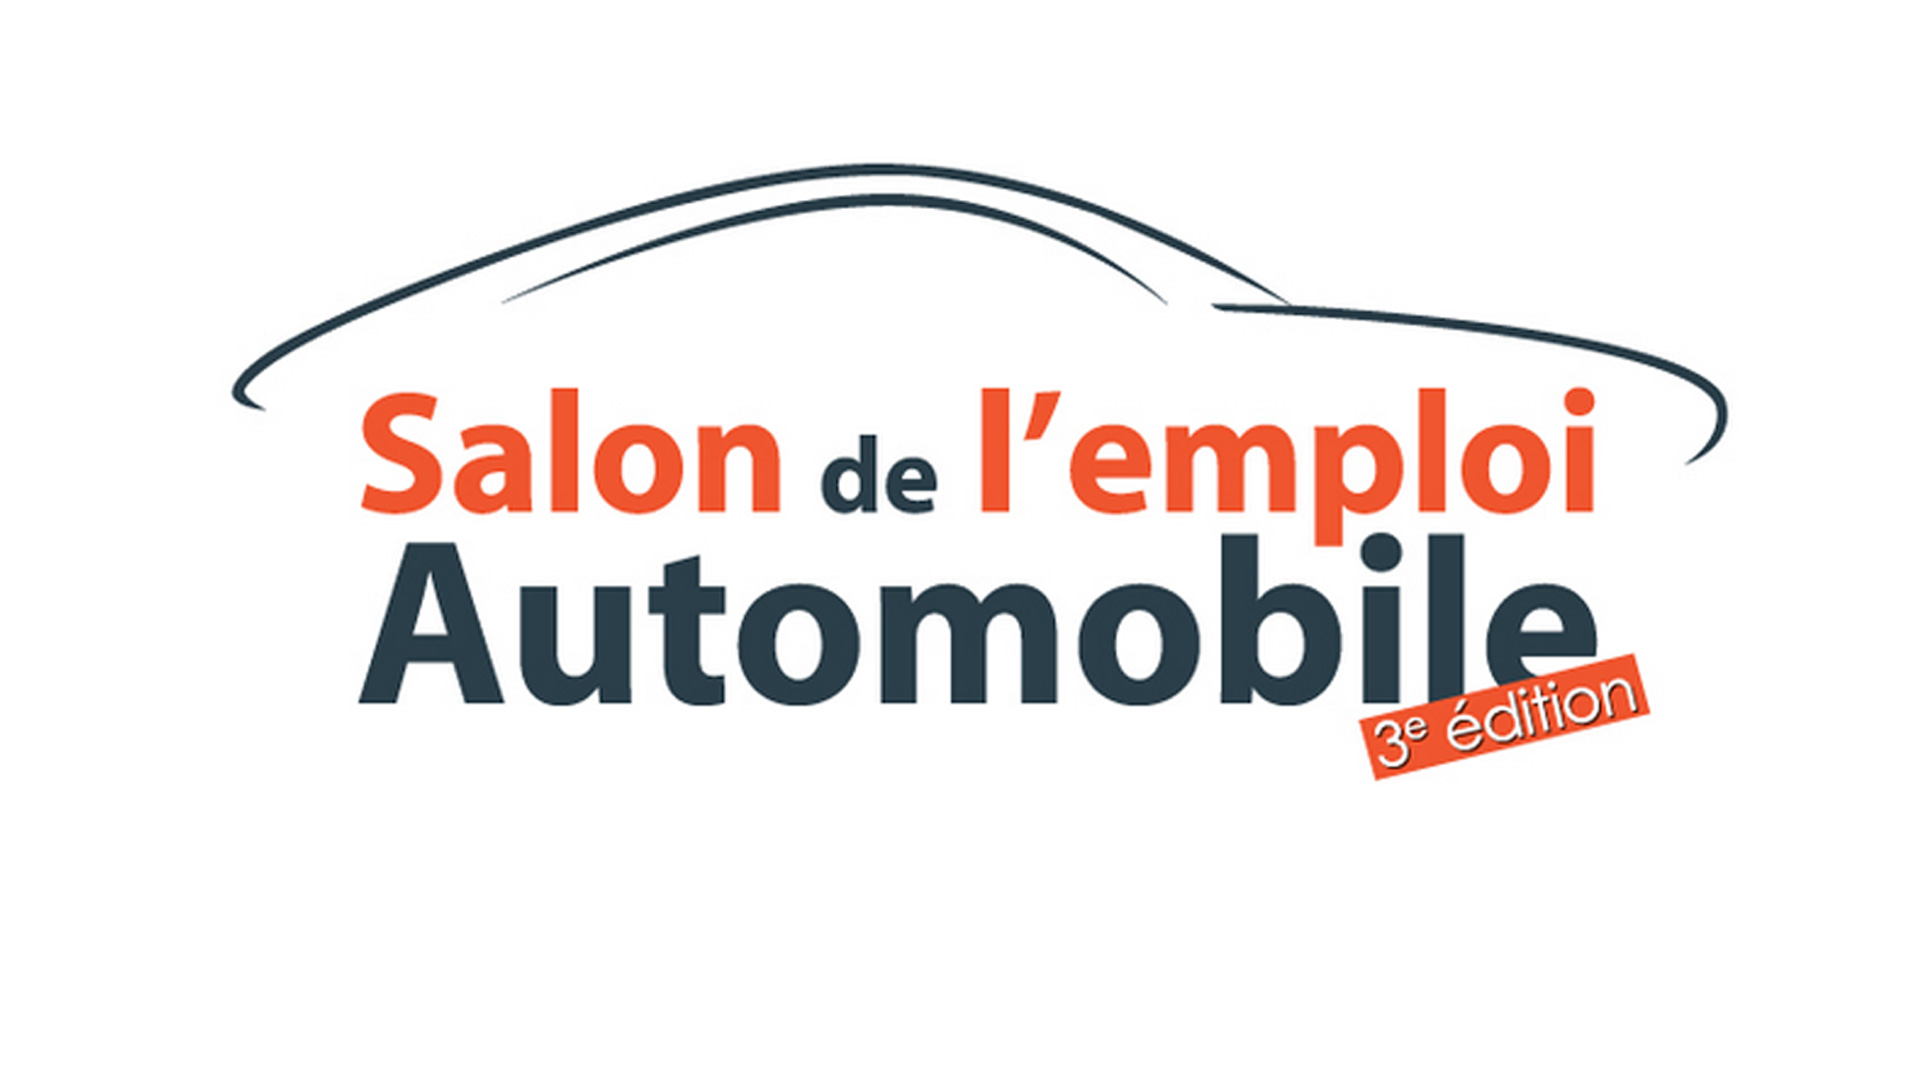 Salon de l'emploi Automobile : 20 mars 2015